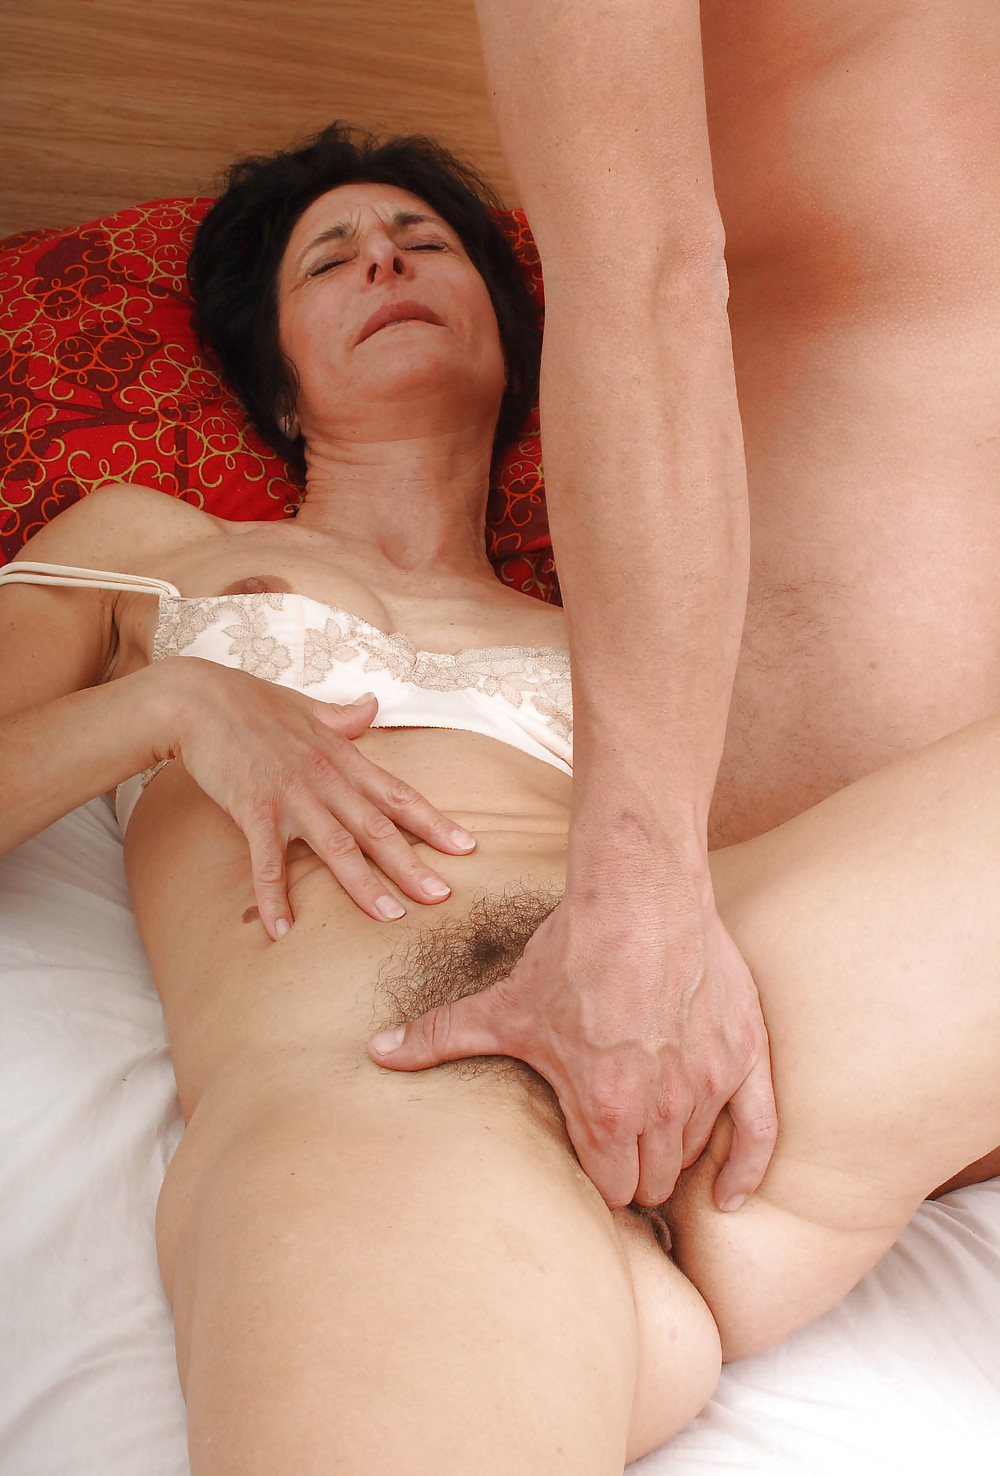 nude-granny-fingering-naked-woman-doing-yoga-getting-fucked